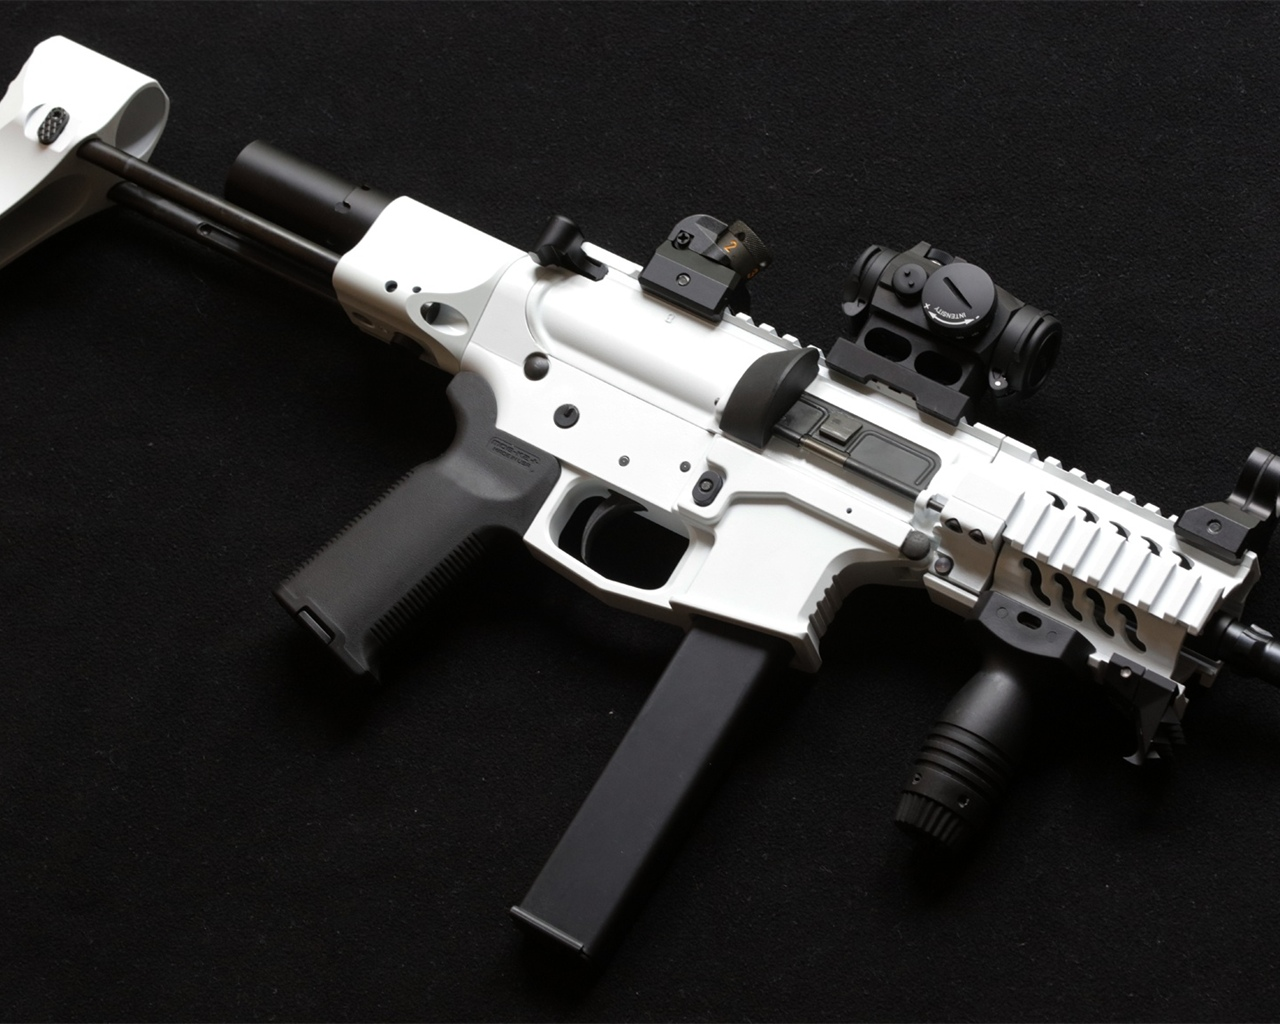 AR-15 style rifle, weapon 1280x1024 wallpaper